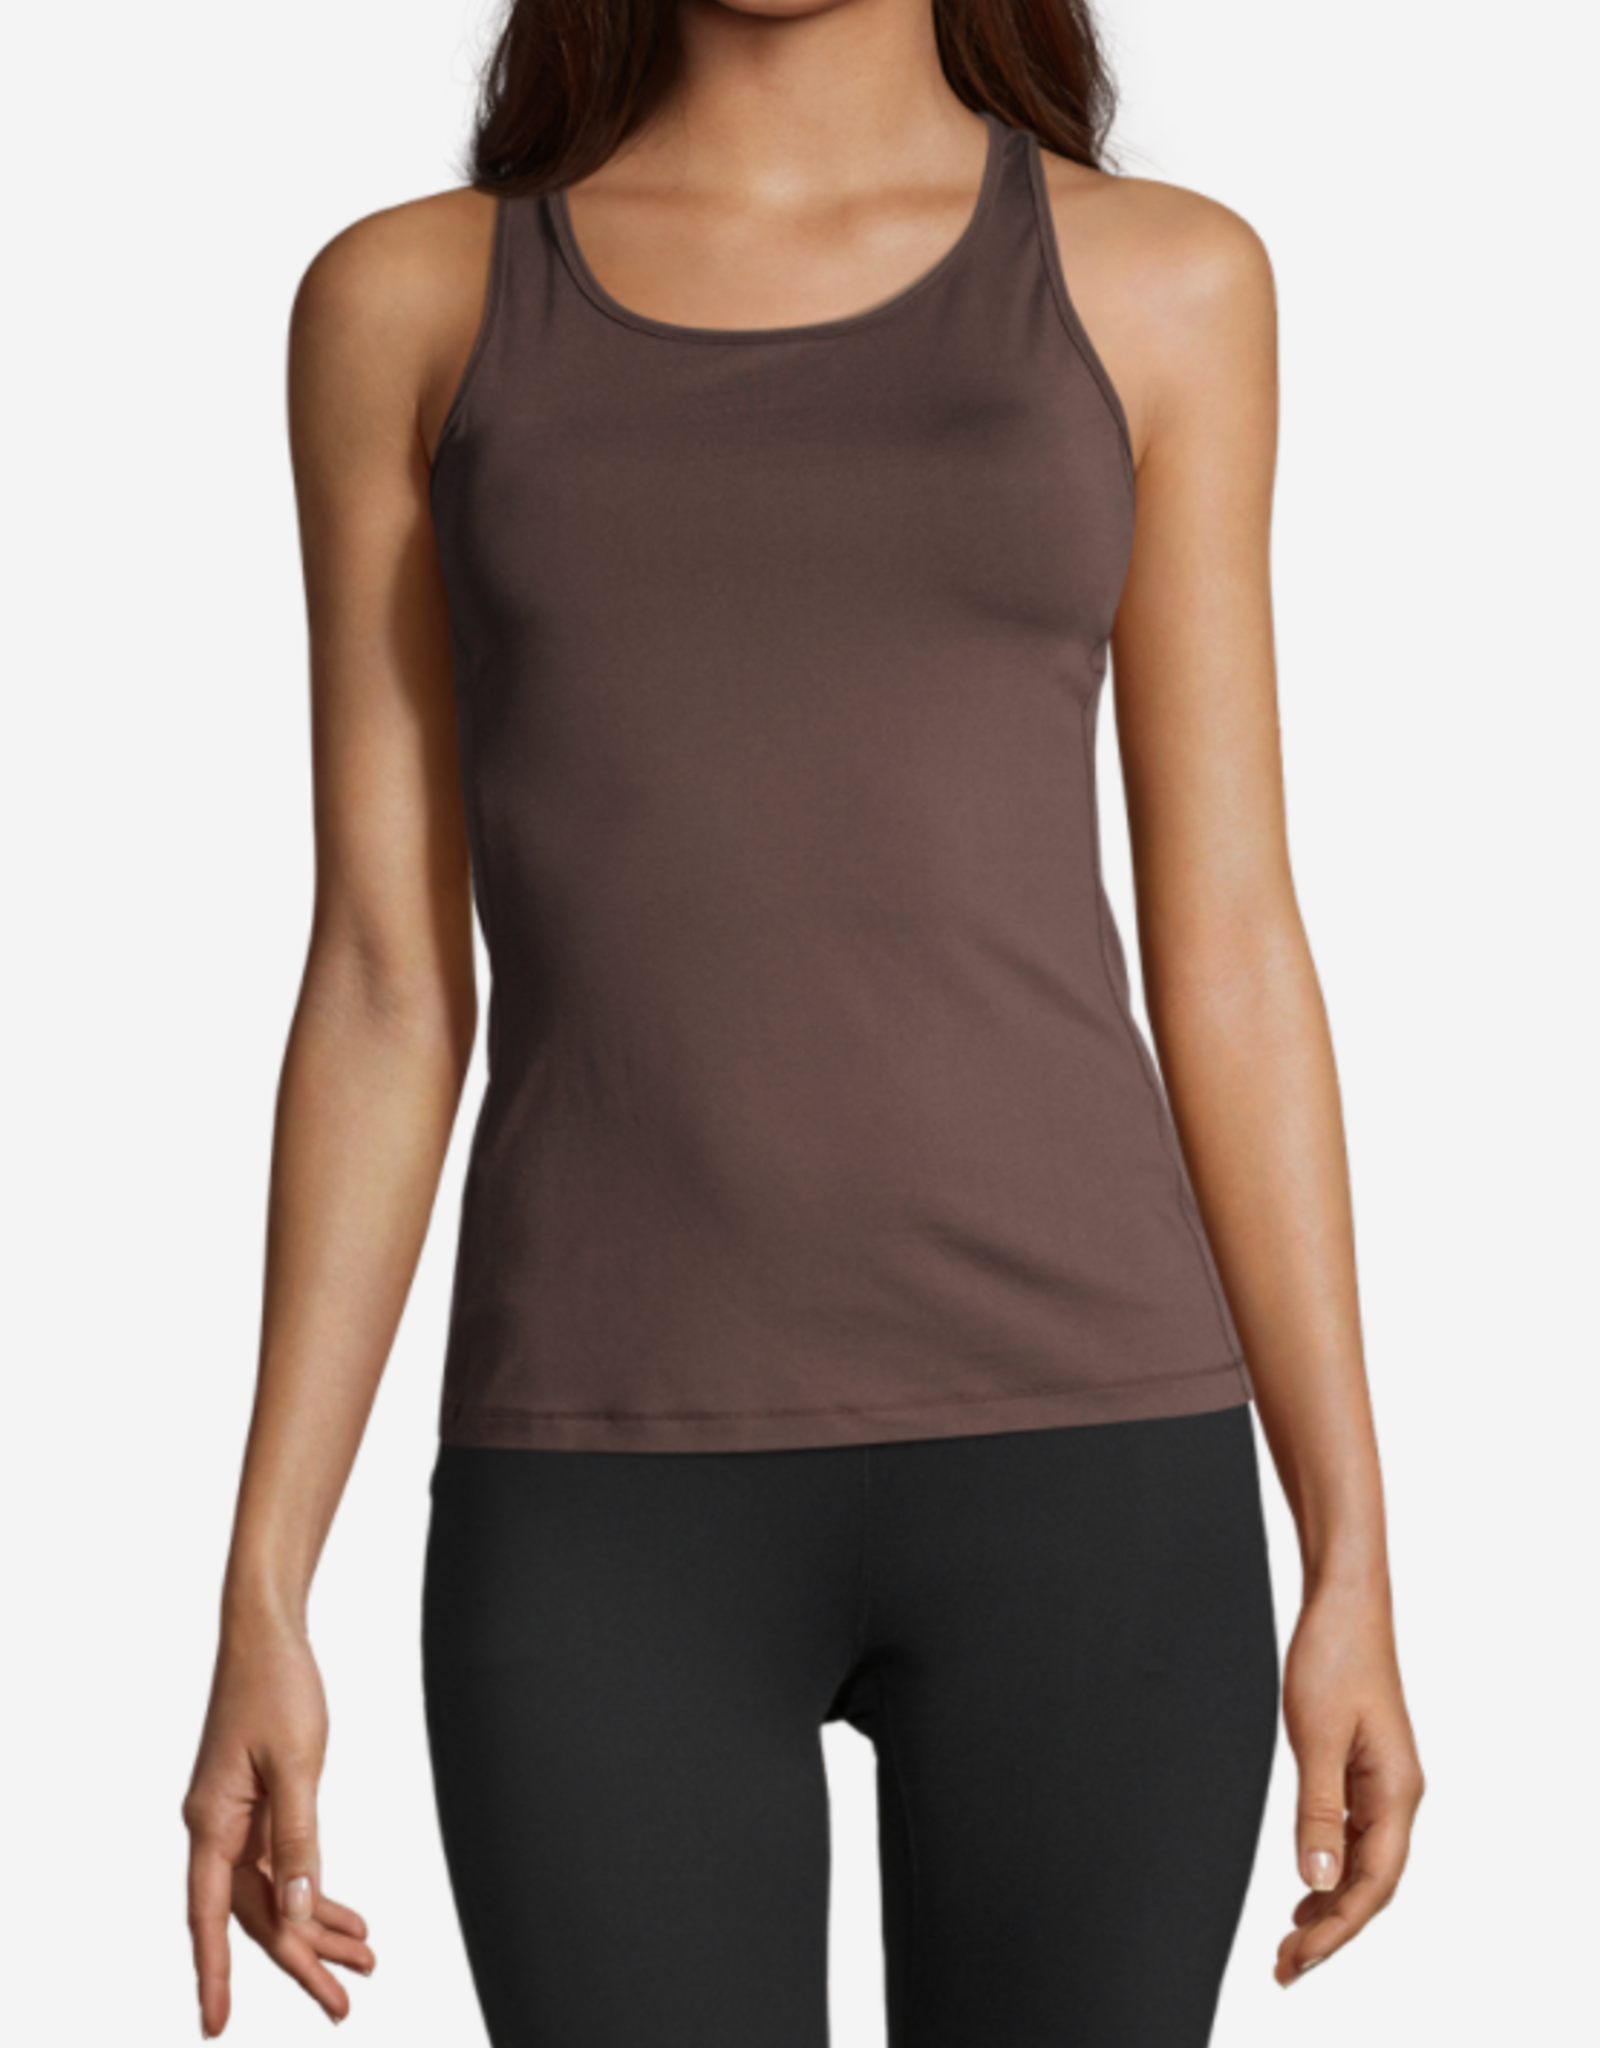 Casall Iconic racerback dames (ref 20462)